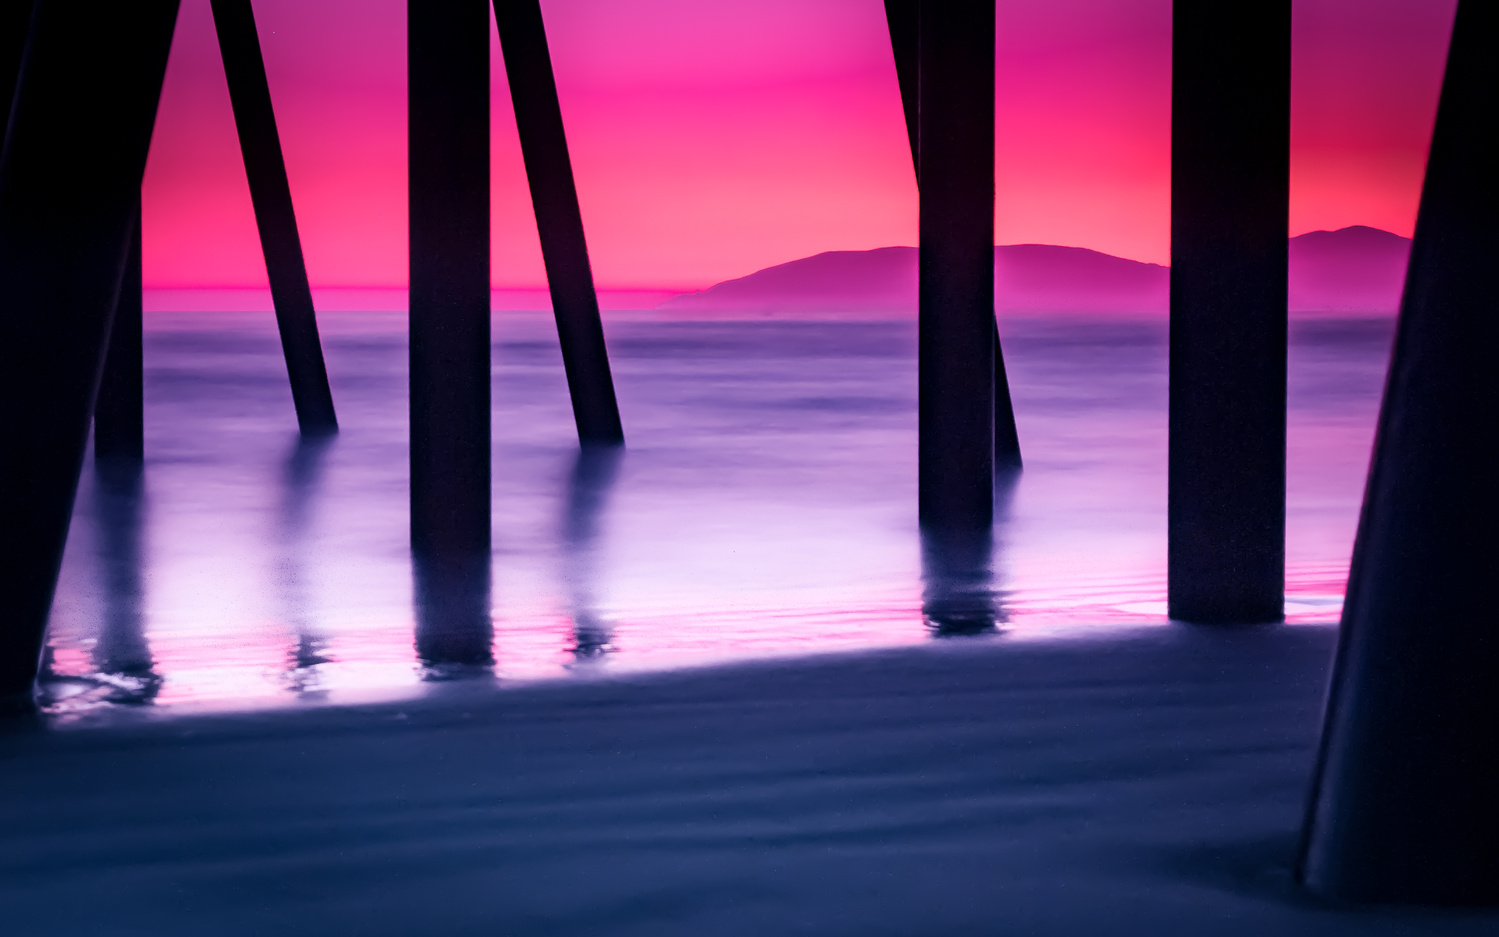 Sunset at Pismo Beach by Viren Nathan